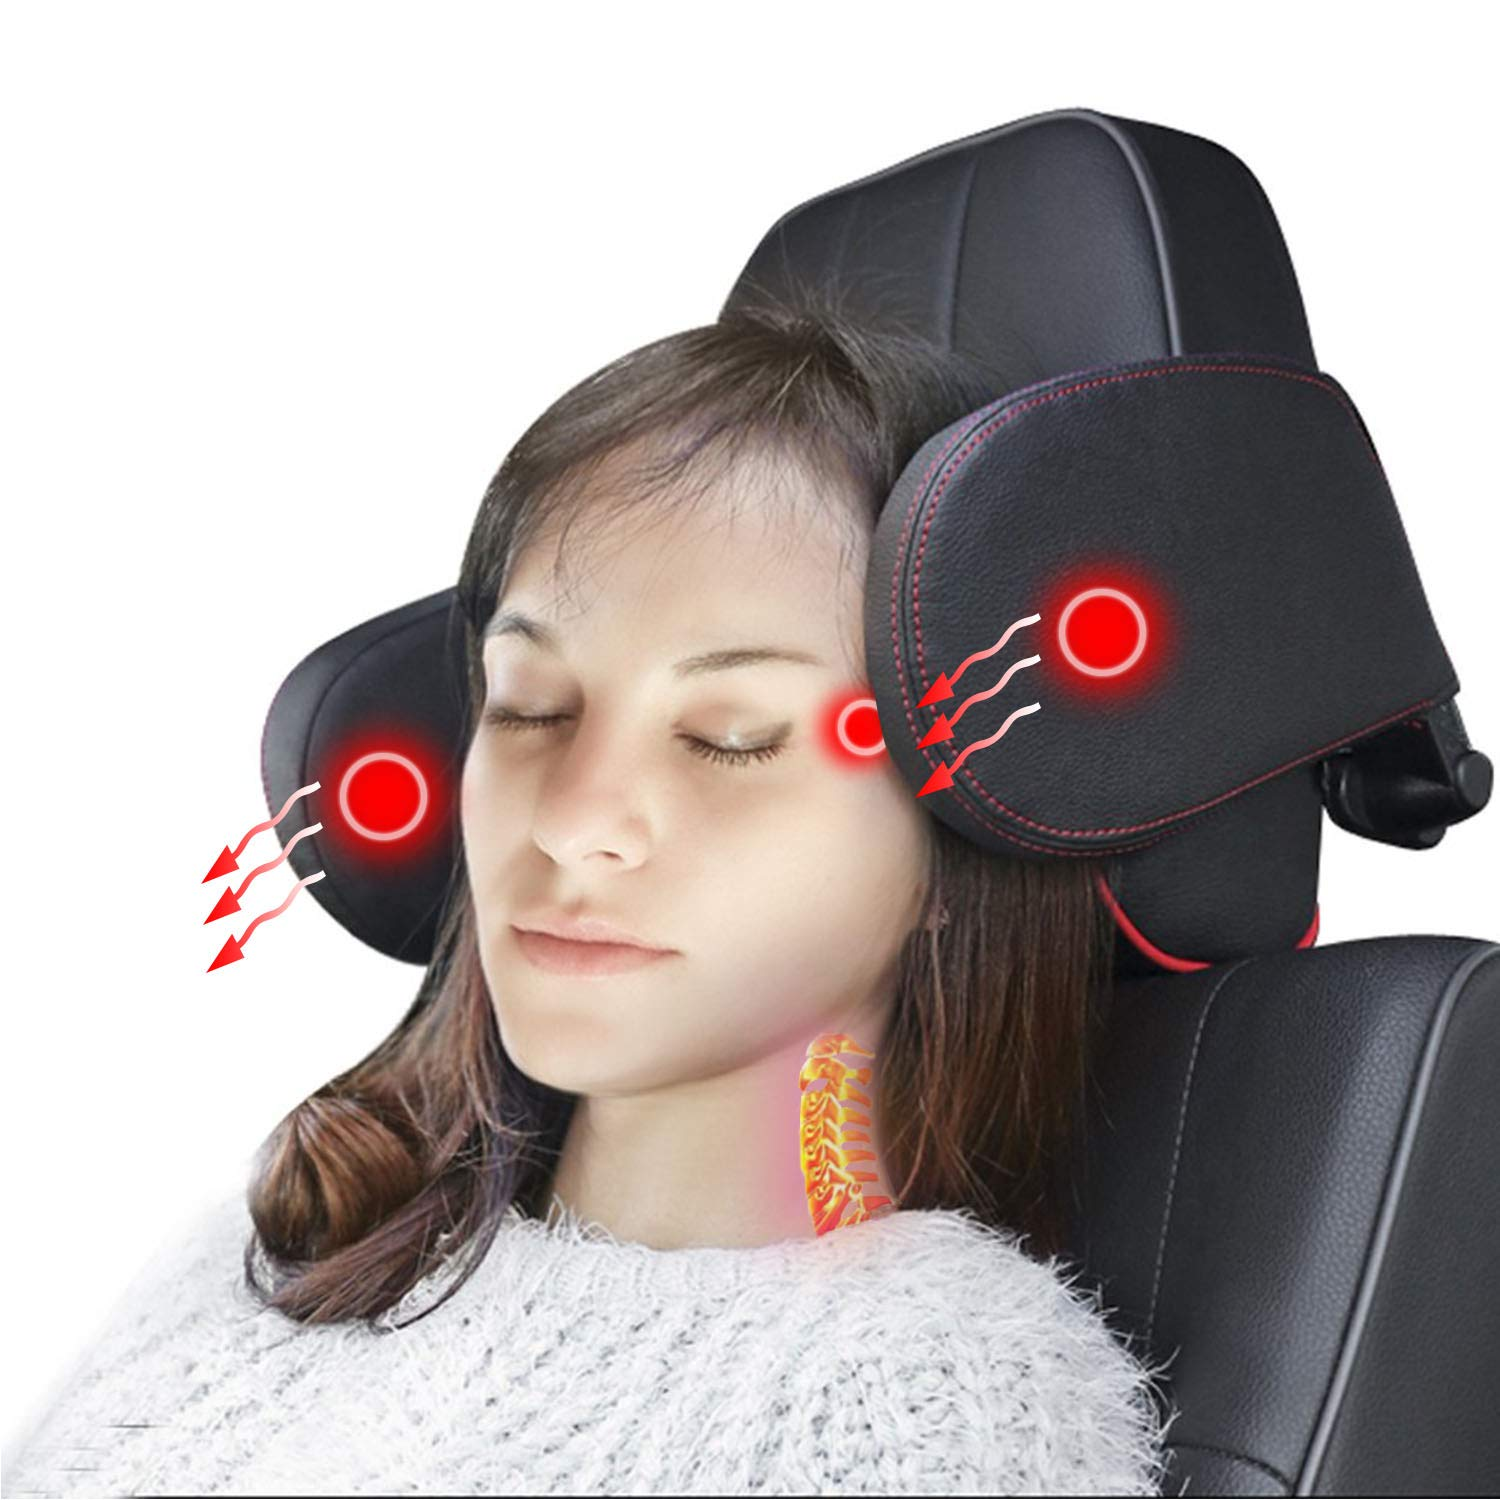 omotor Car Seat Pillow Headrest Neck Support Travel Sleeping Cushion for Kids Adults Black